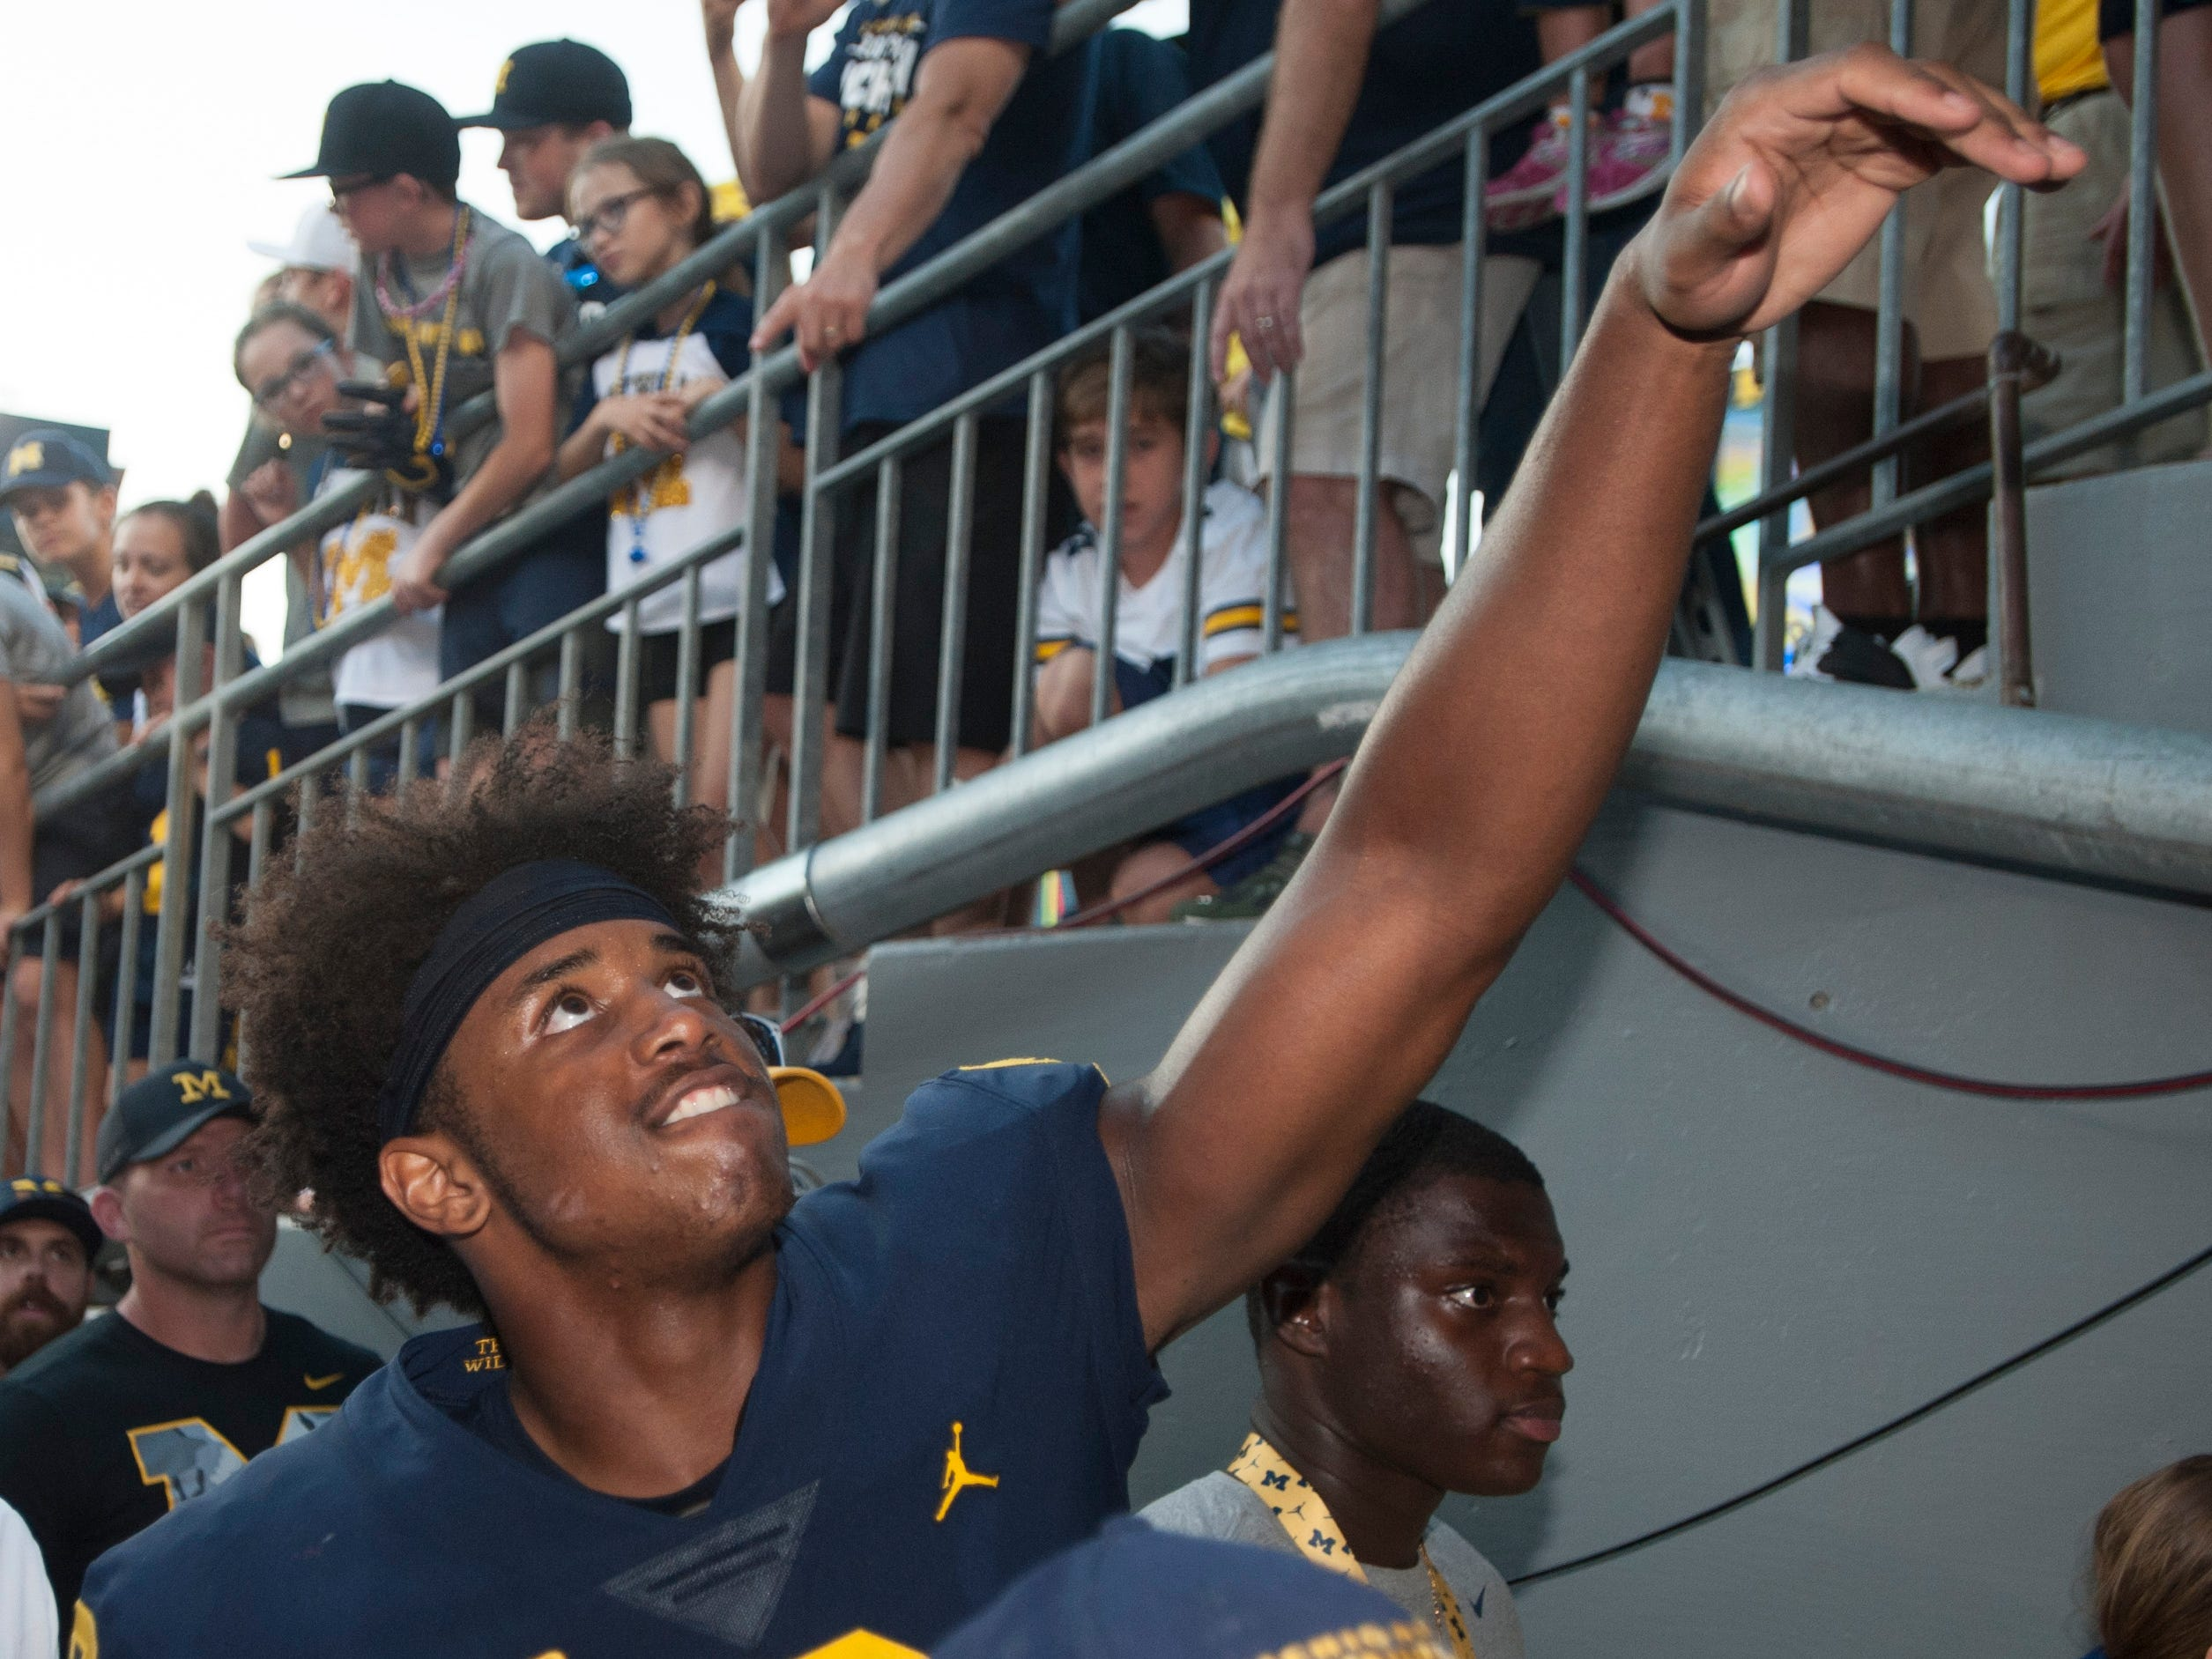 Michigan wide receiver Donovan Peoples-Jones tosses his gloves to fans as he heads up the Michigan Stadium tunnel to the locker room after the game. DPJ caught four passes for 90 yards and three touchdowns in the game.